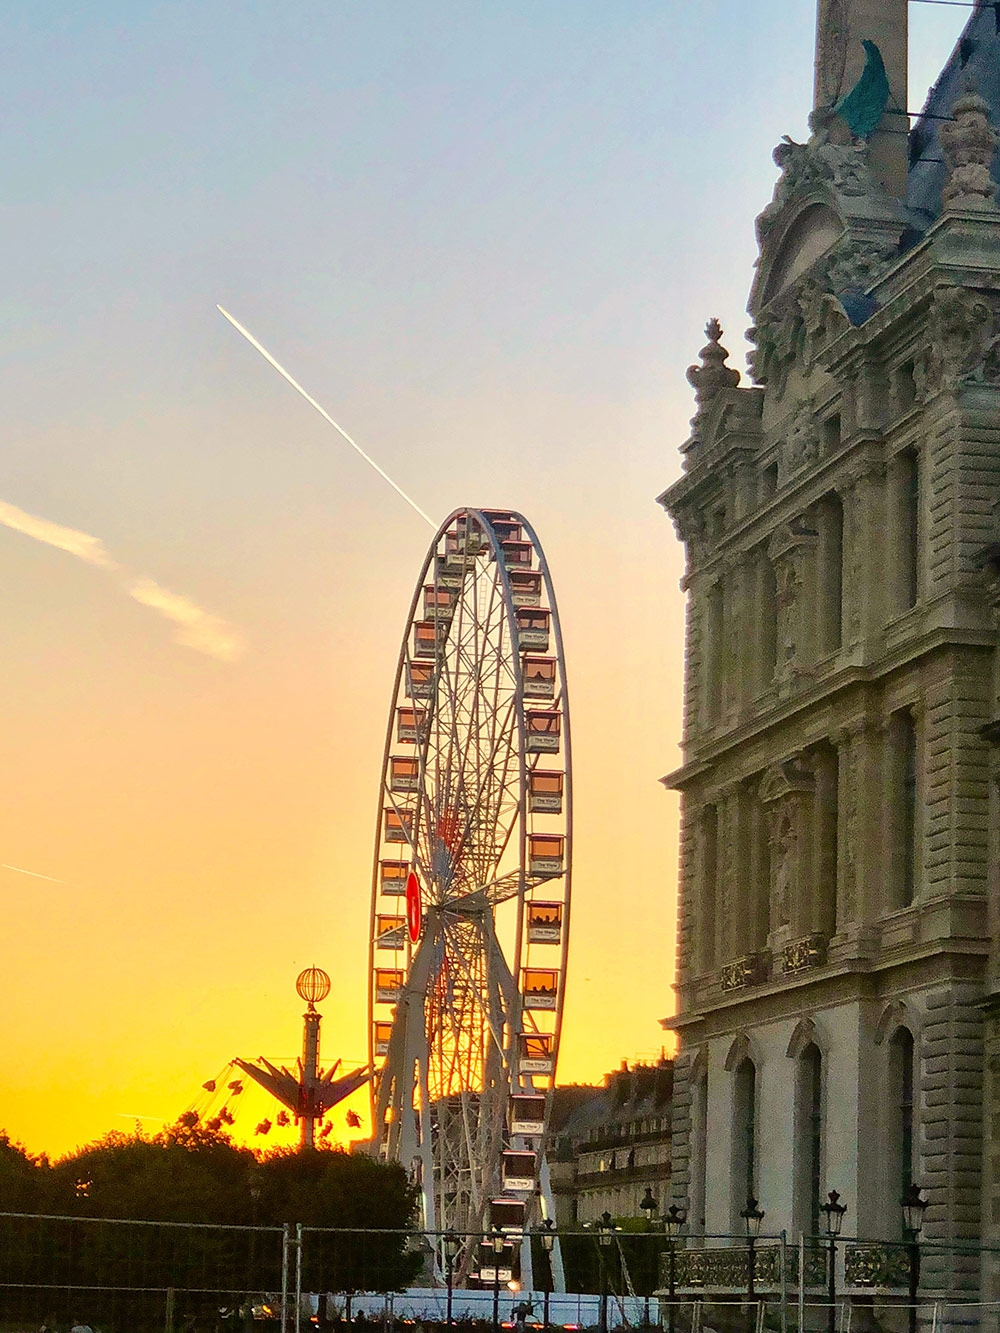 A view of the sun setting behind a Ferris Wheel at The Louvre. December 2018